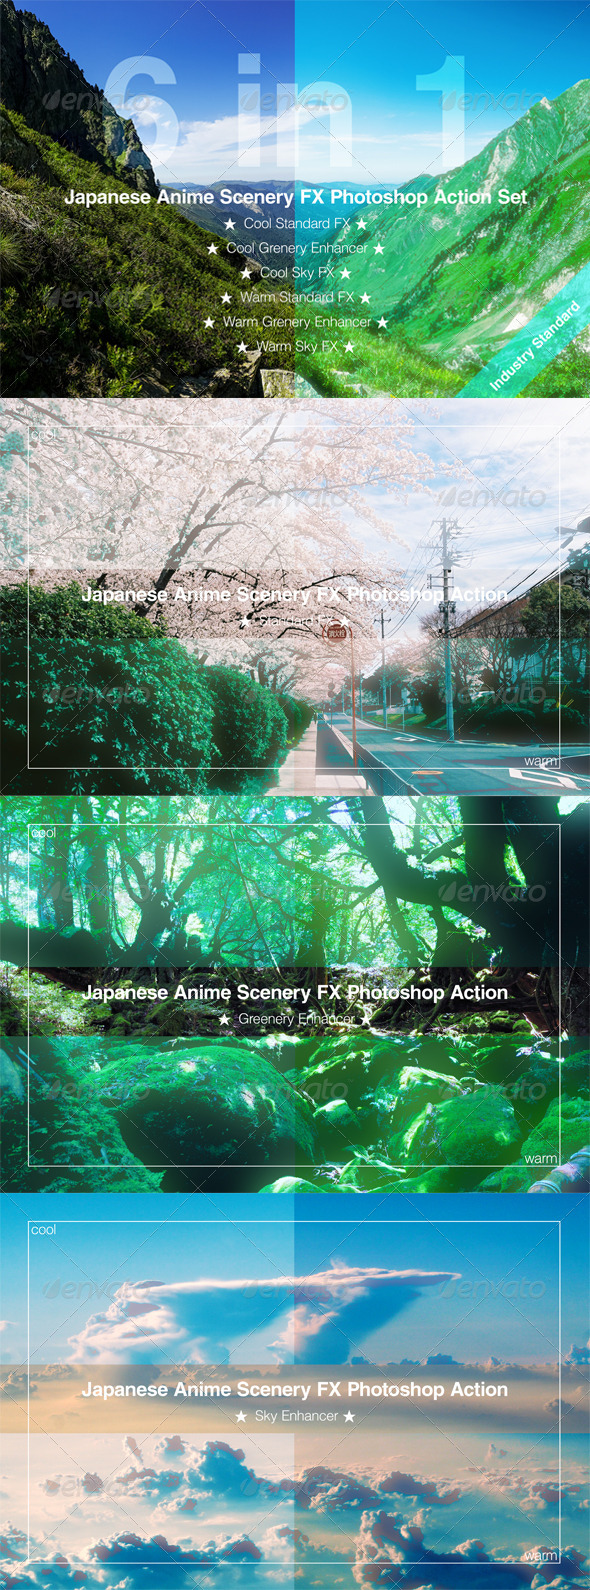 GraphicRiver Japanese Anime Scenery FX Photoshop Action Set 8569474